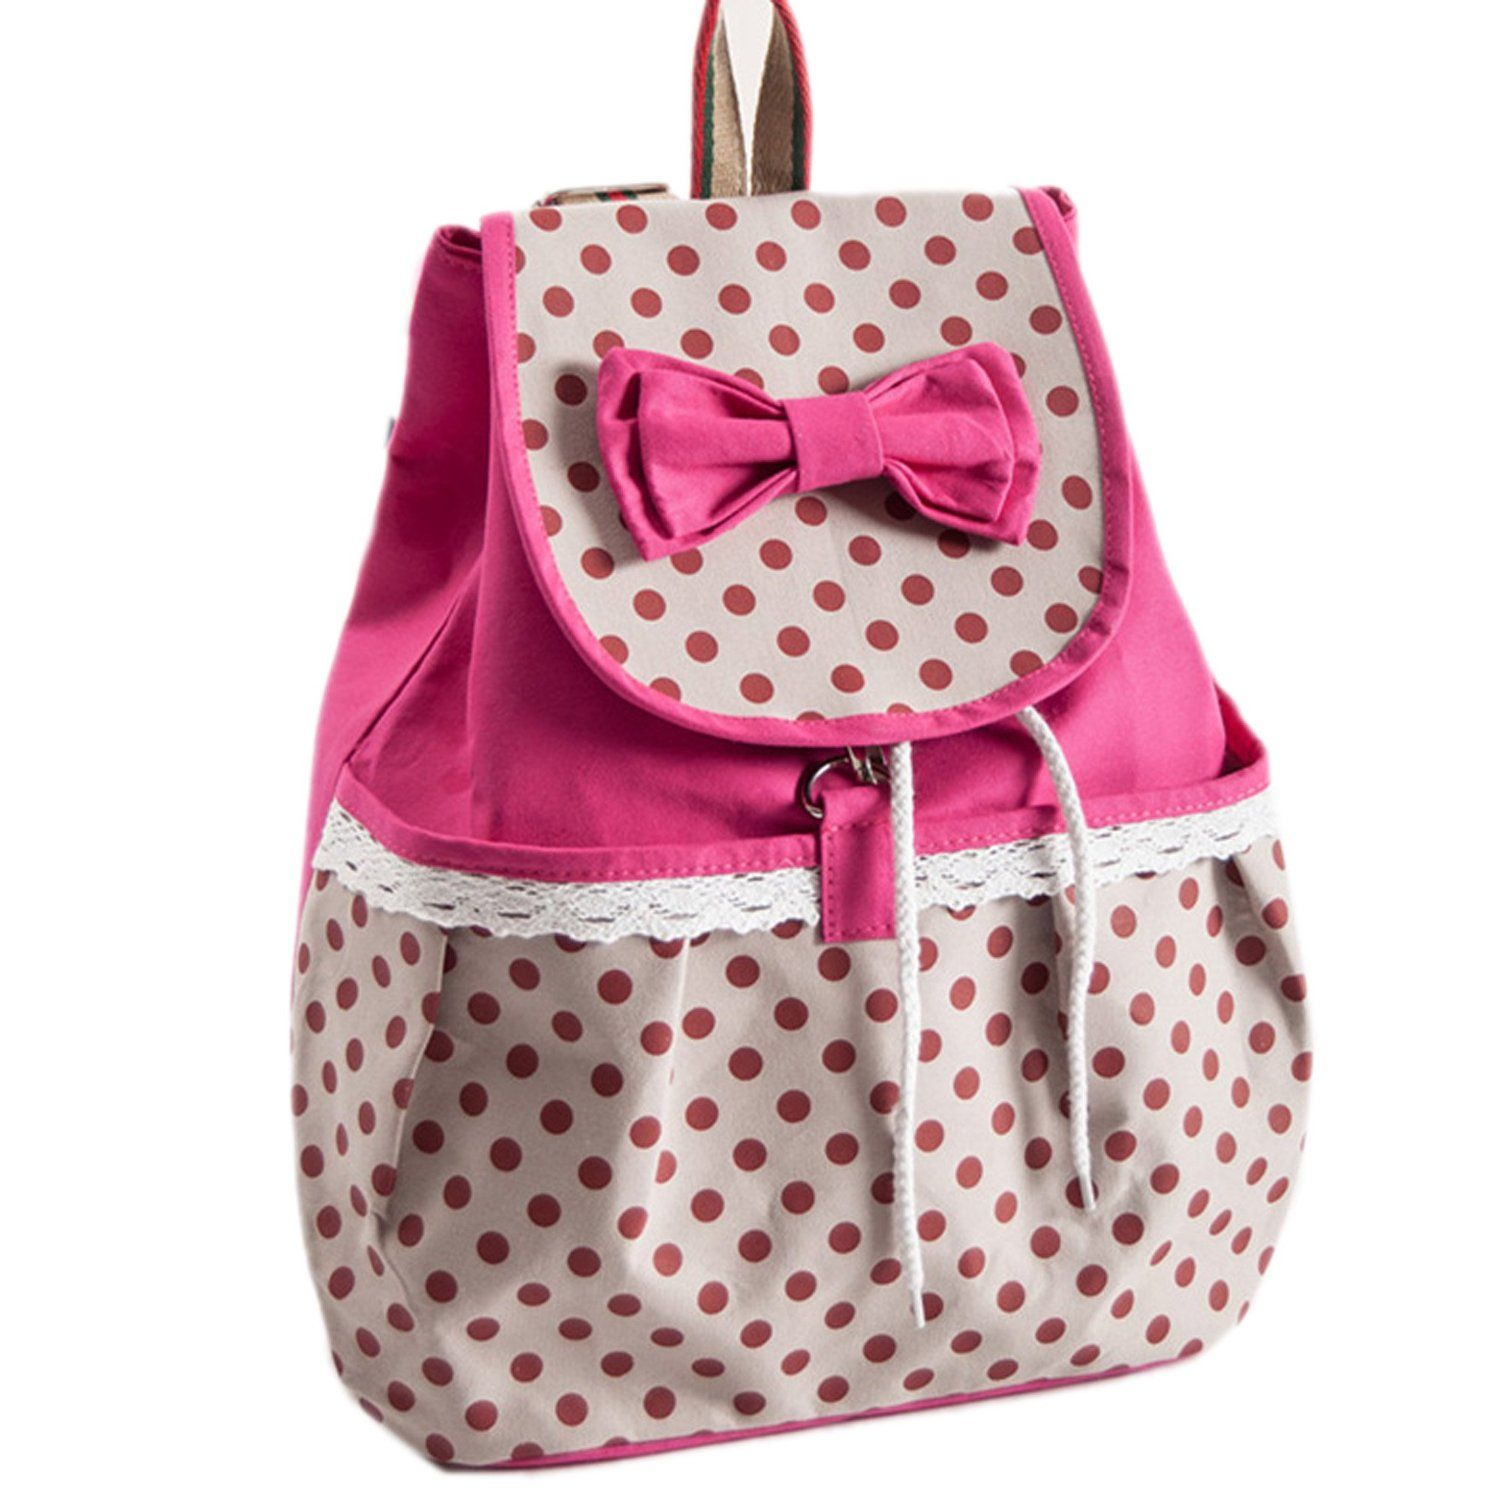 The Coolest Backpacks For Kids, Teen, and College | Puppy face ...